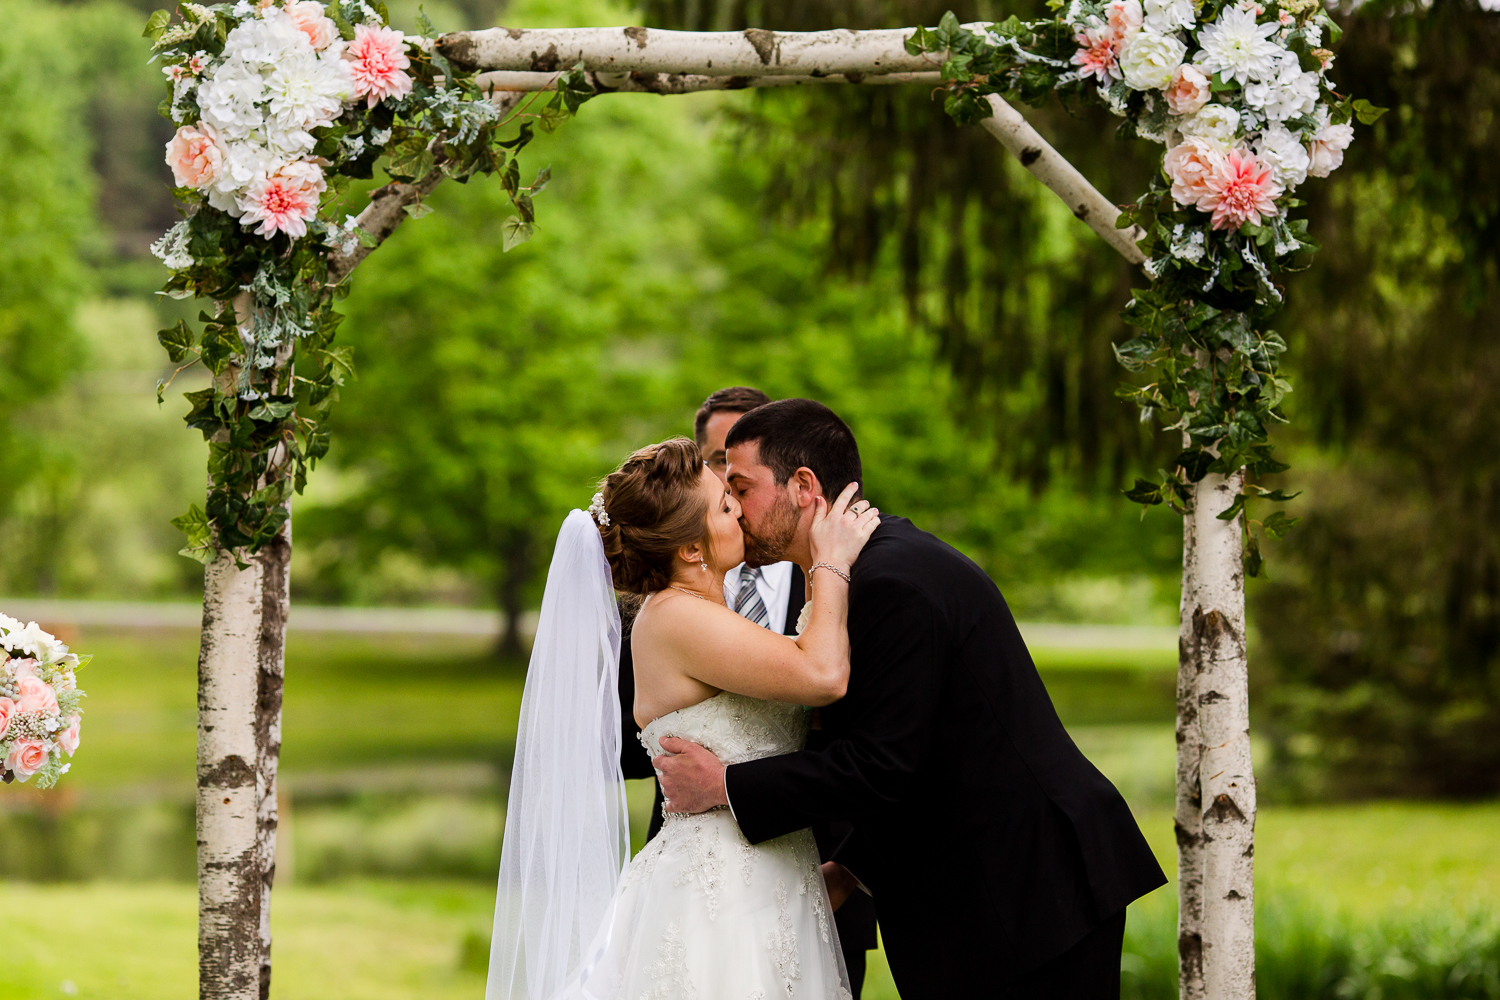 Bride and groom share their first kiss during their outdoor wedding ceremony. They are standing under a birch tree arch adorned with flowers. There is a pond in the background.